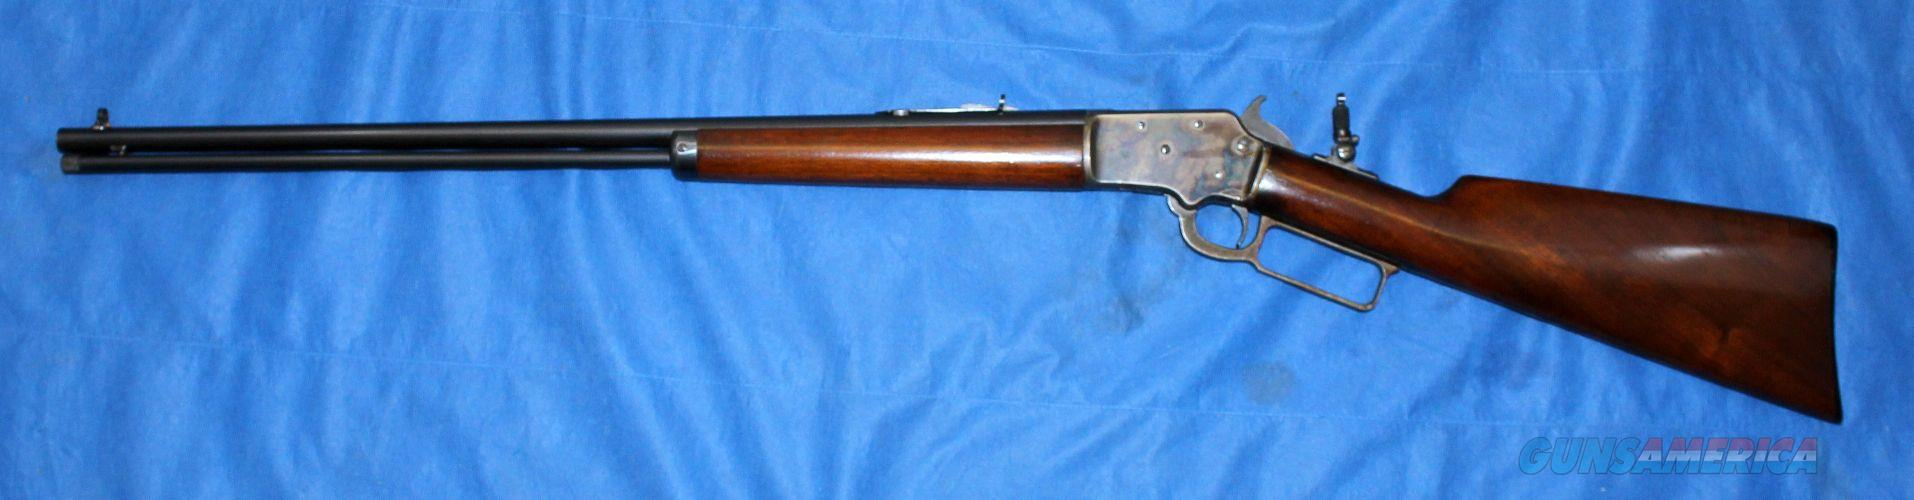 Marlin Model 189 rifle - .22 S,L & LR - HIGH CONDITION - CASE COLORS   Guns > Rifles > Marlin Rifles > Modern > Lever Action